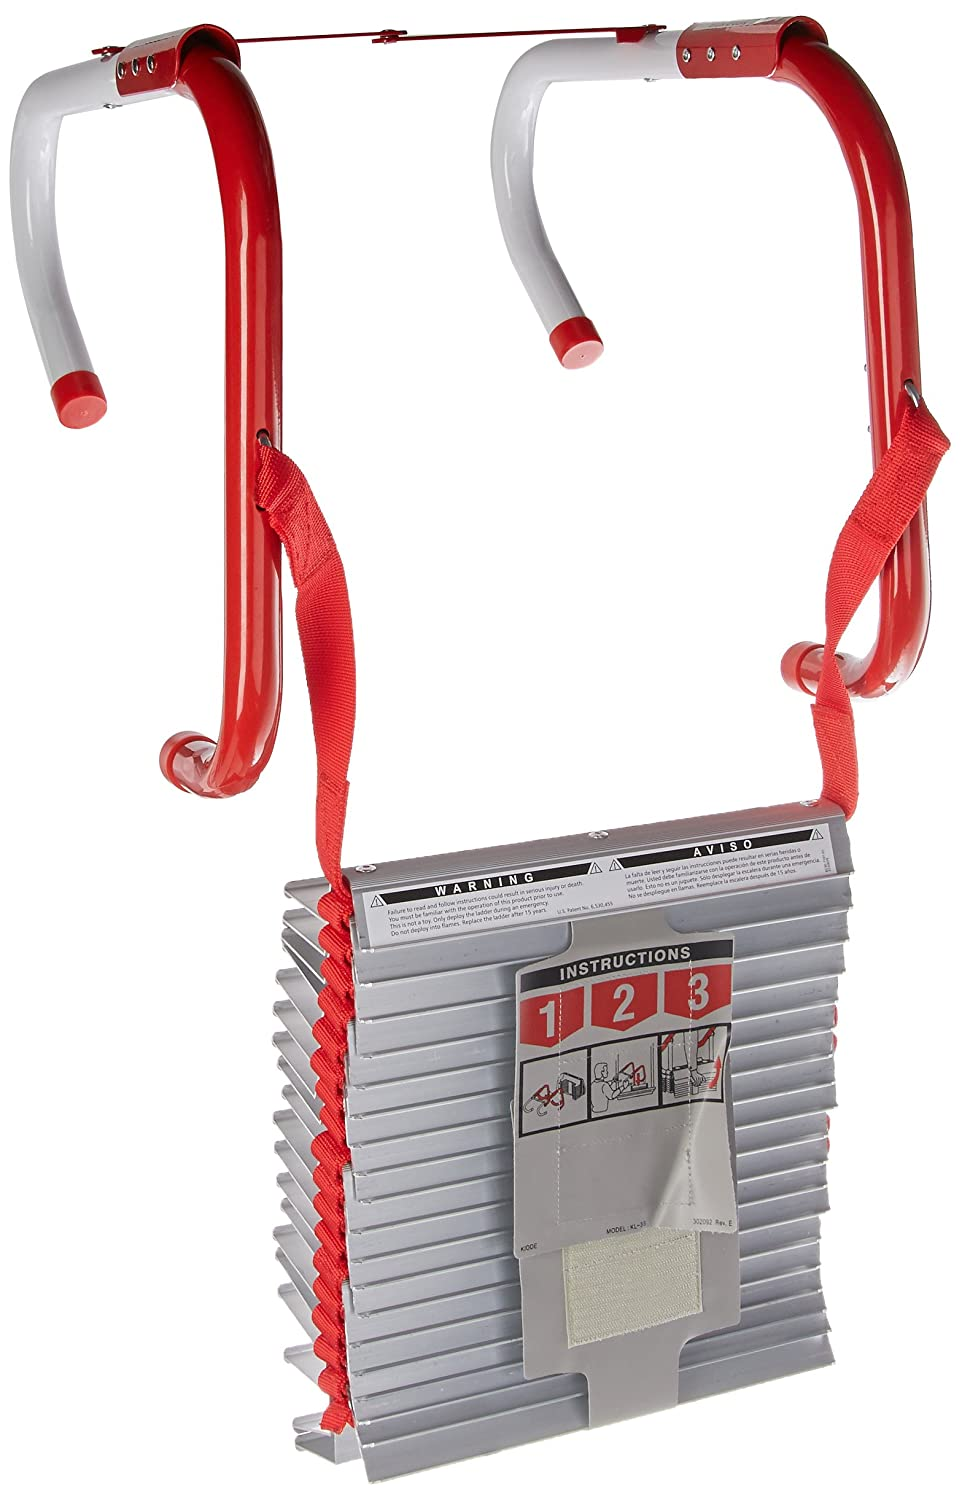 Gorilla Ladders Step Stool Is At Home Depot For 20 Reg 30